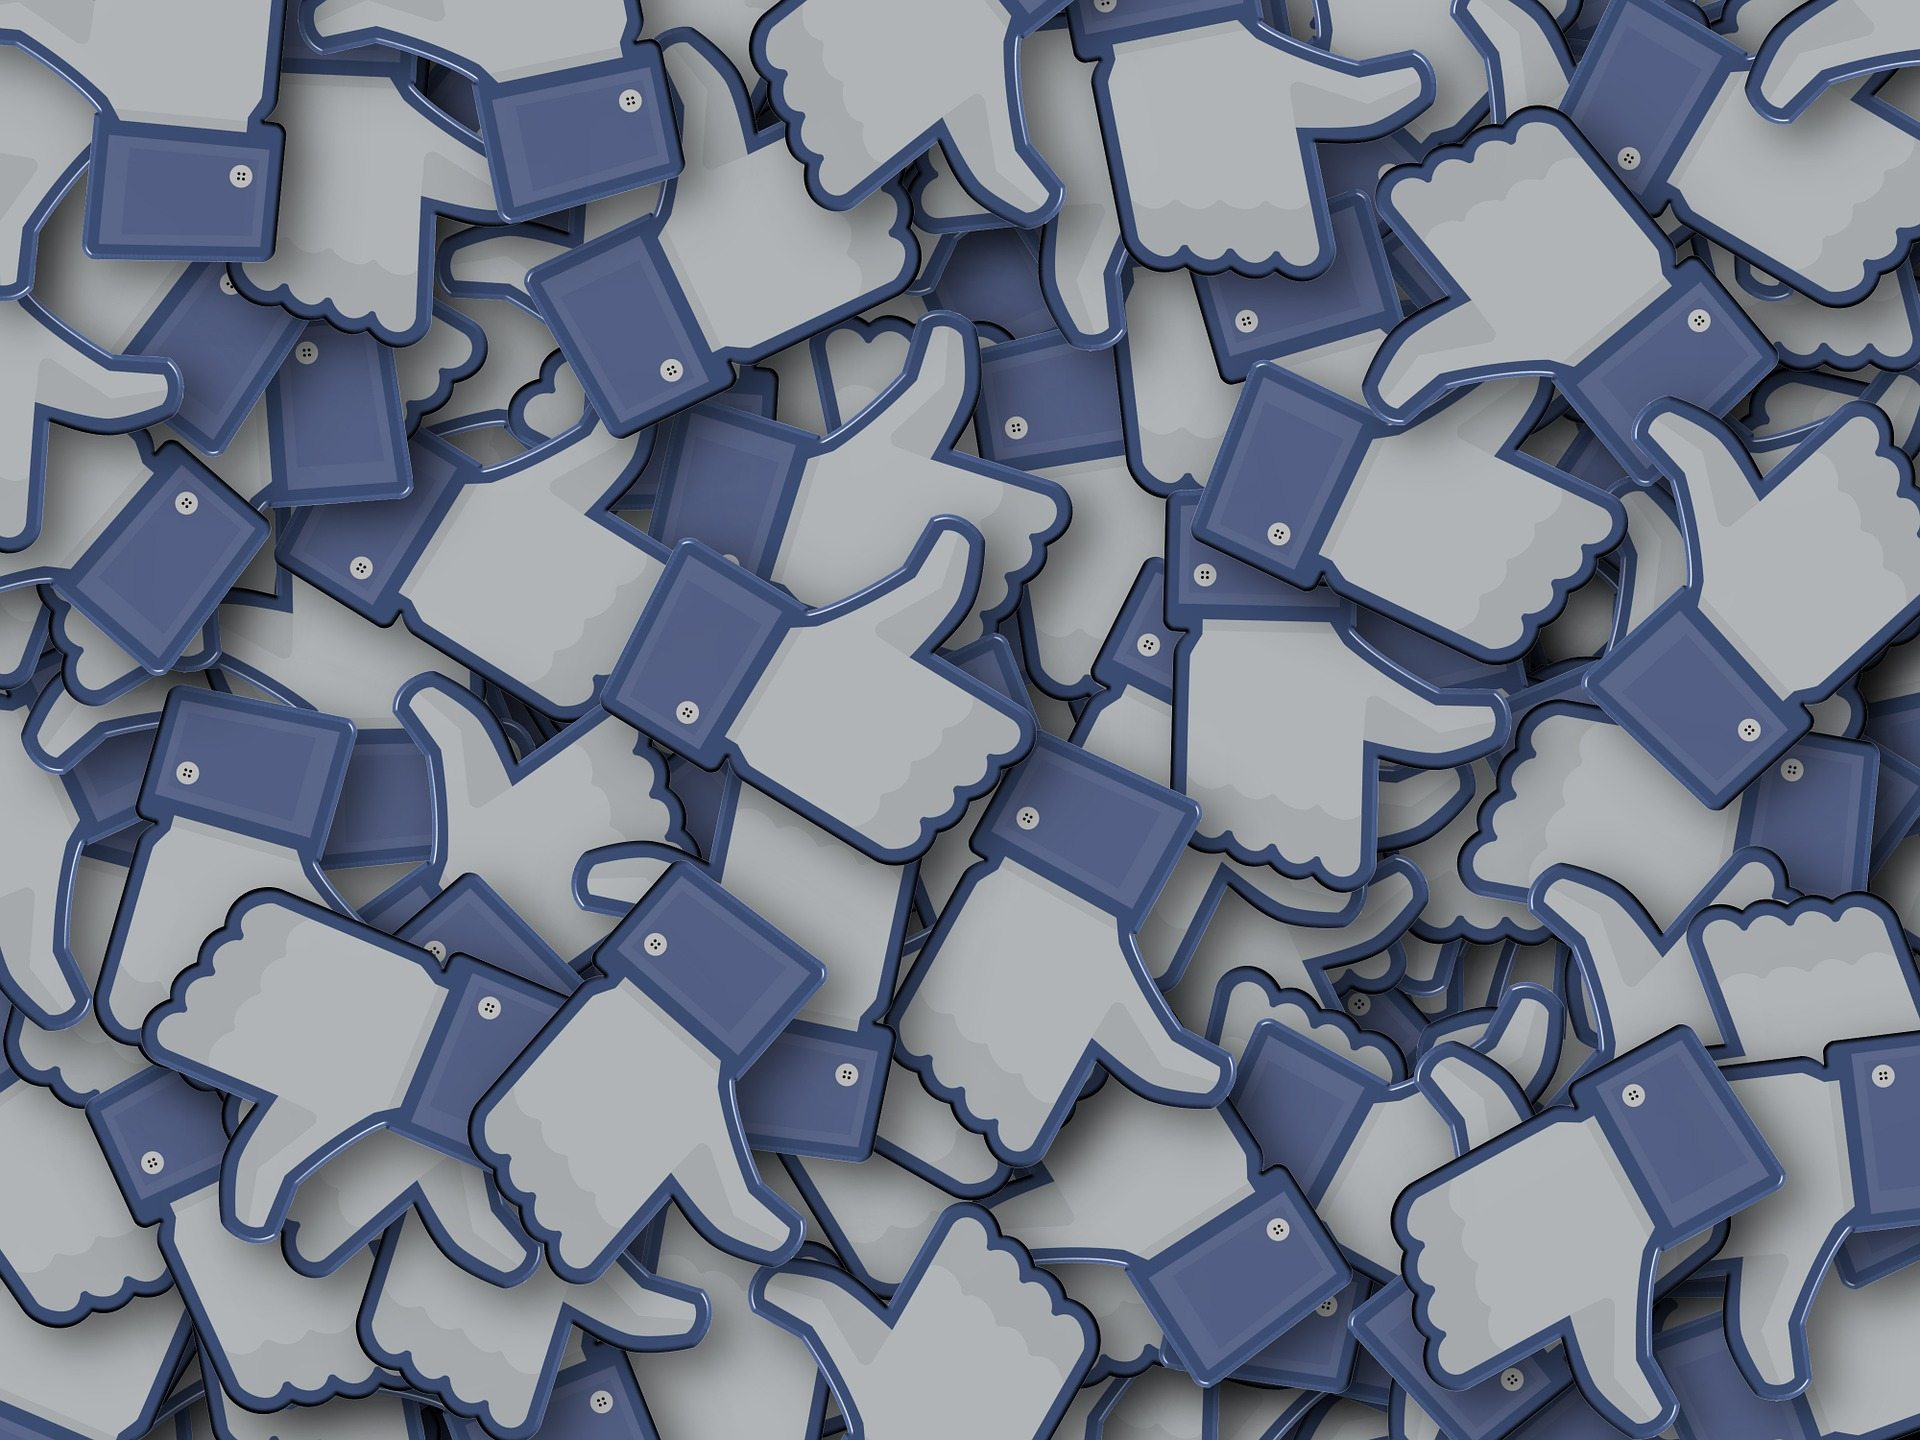 4 Killer Facebook Hacks You Should Be Using